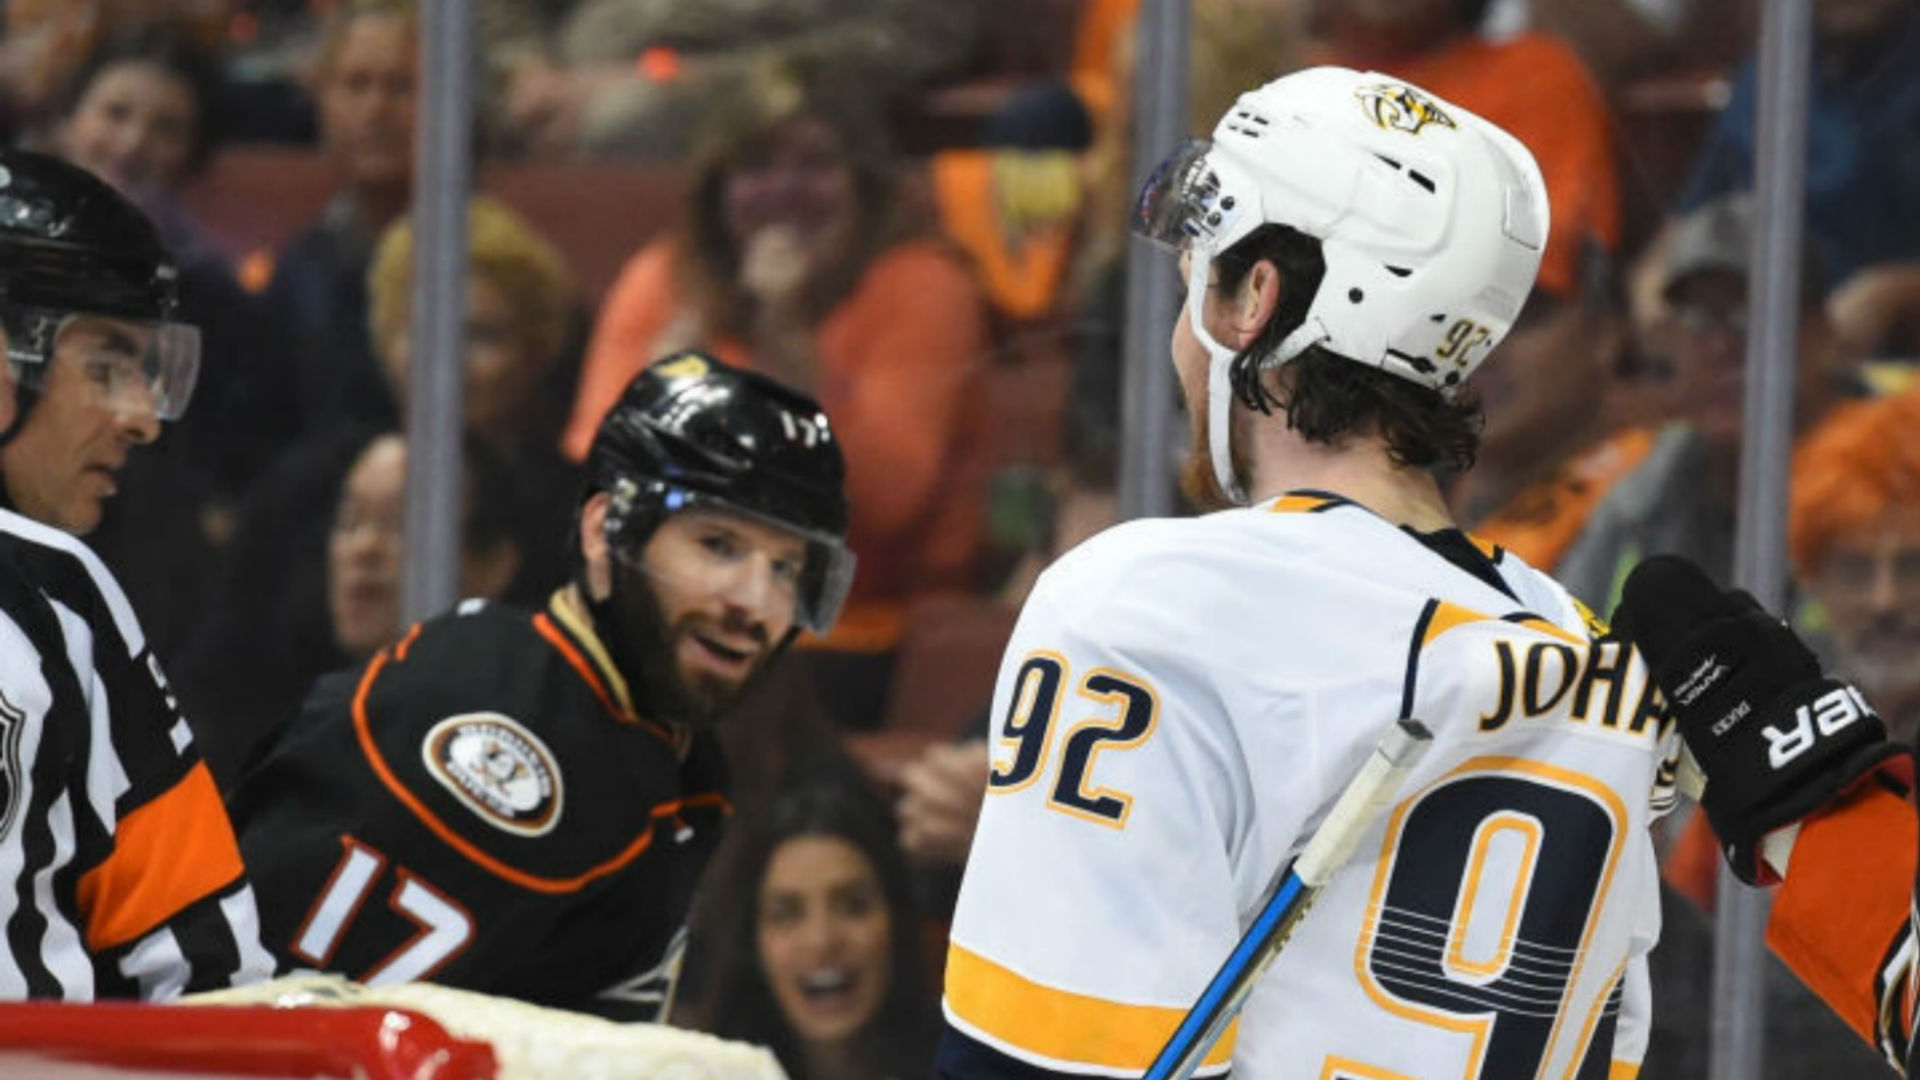 Predators' Johansen rips Ryan Kesler after Game 2